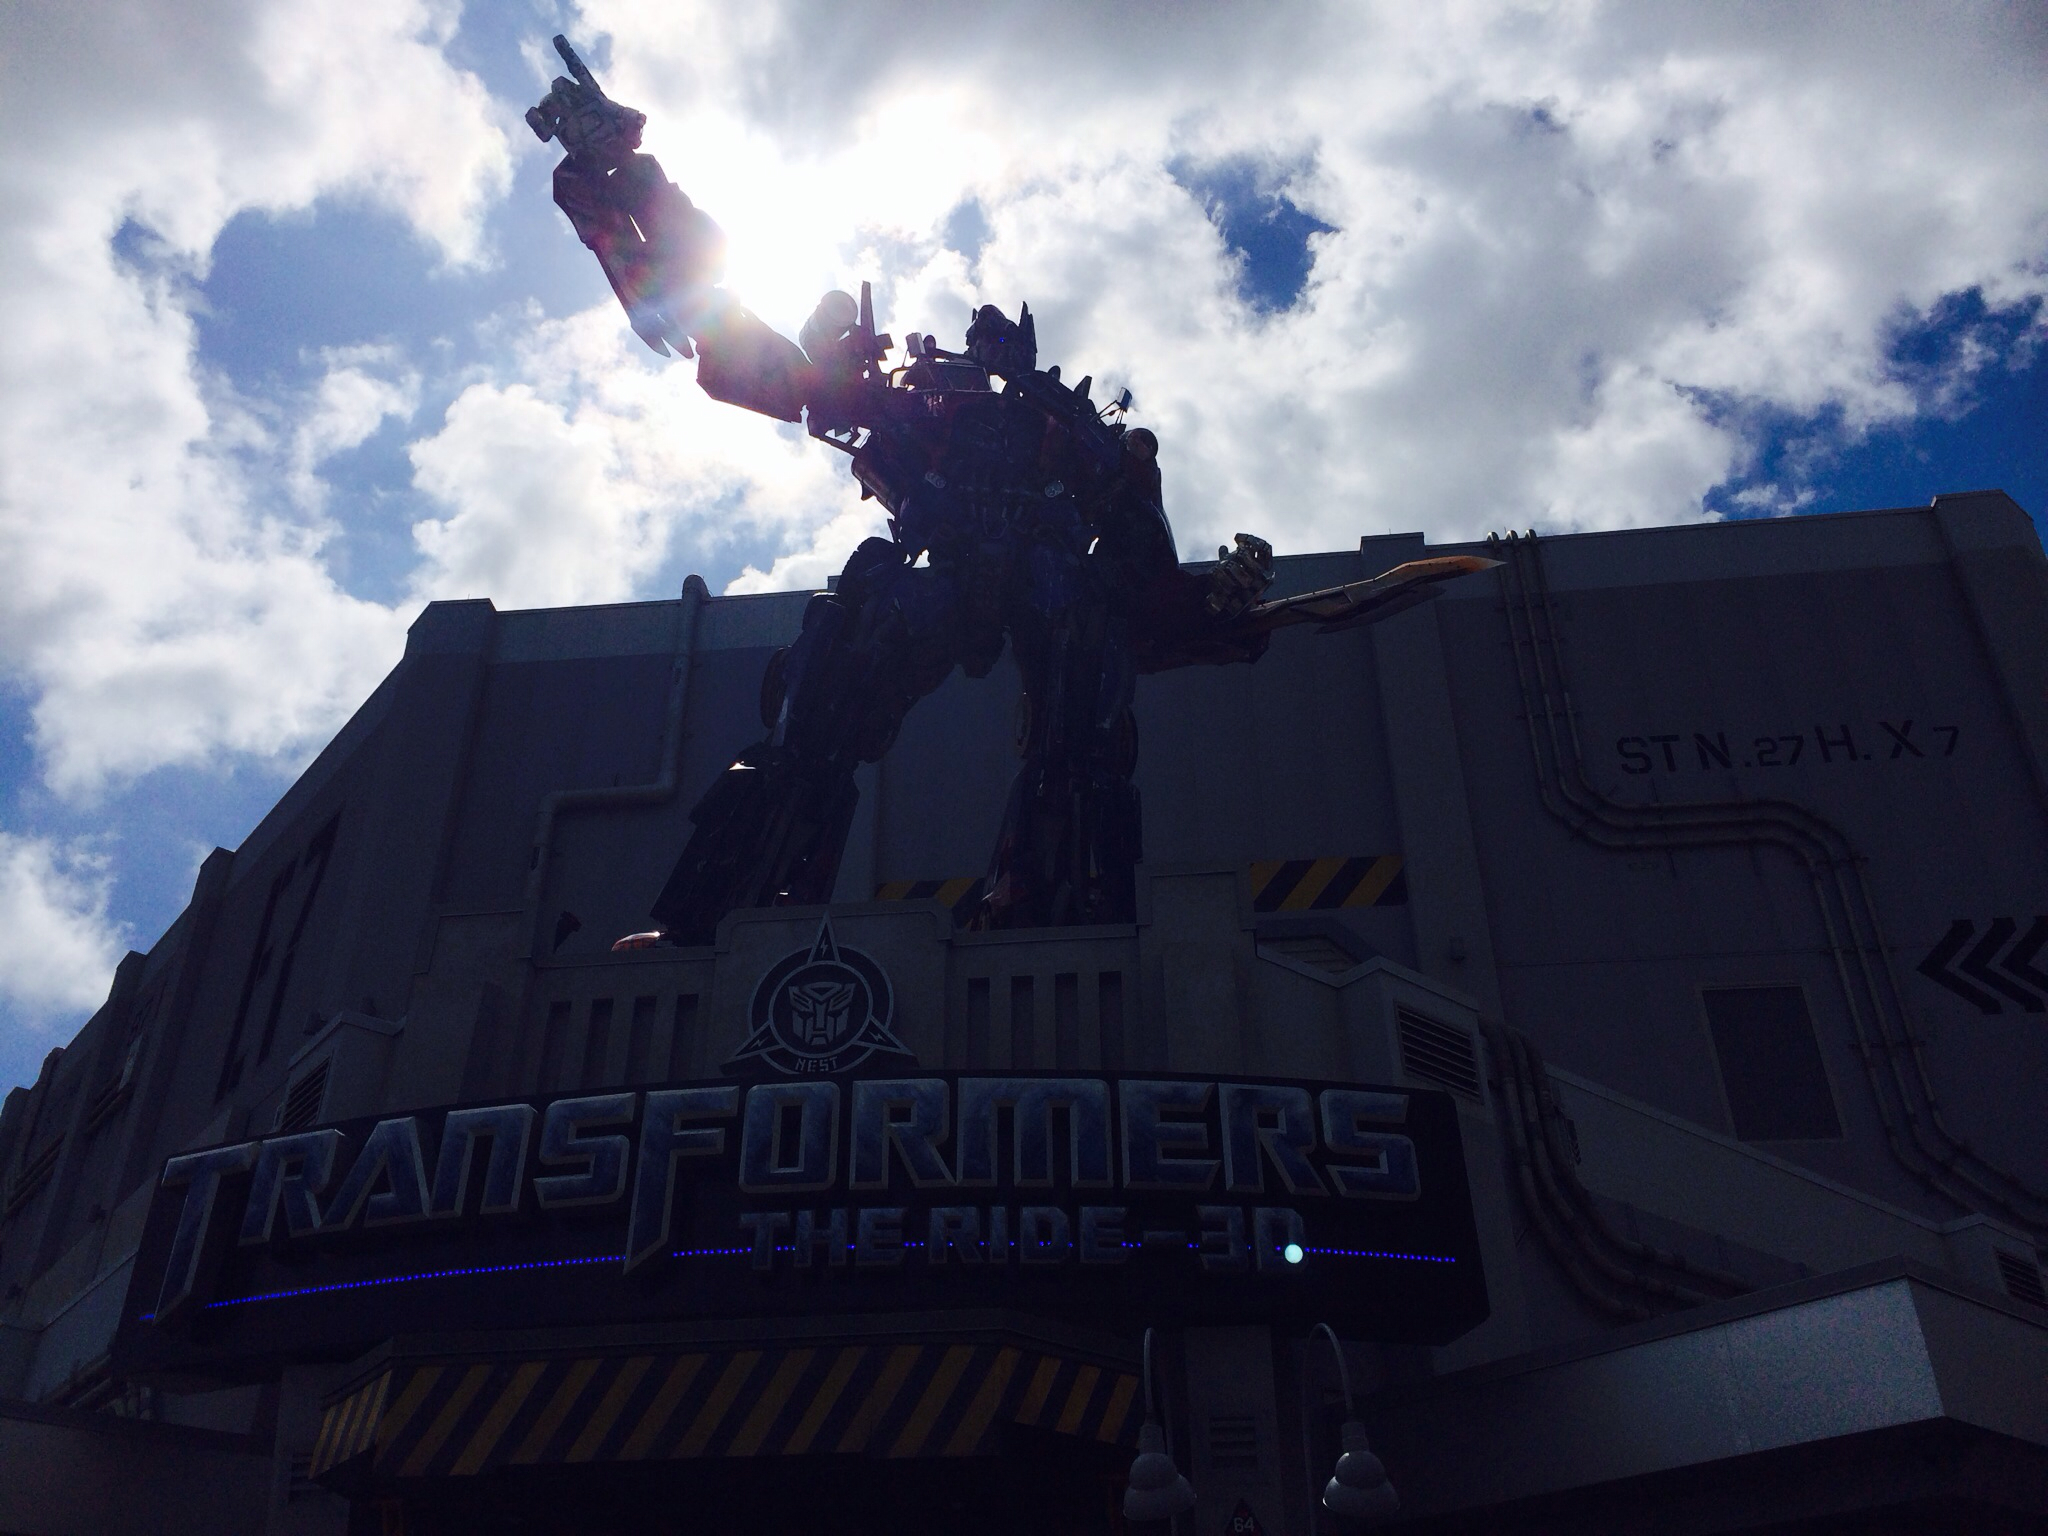 transformers ride at Universal